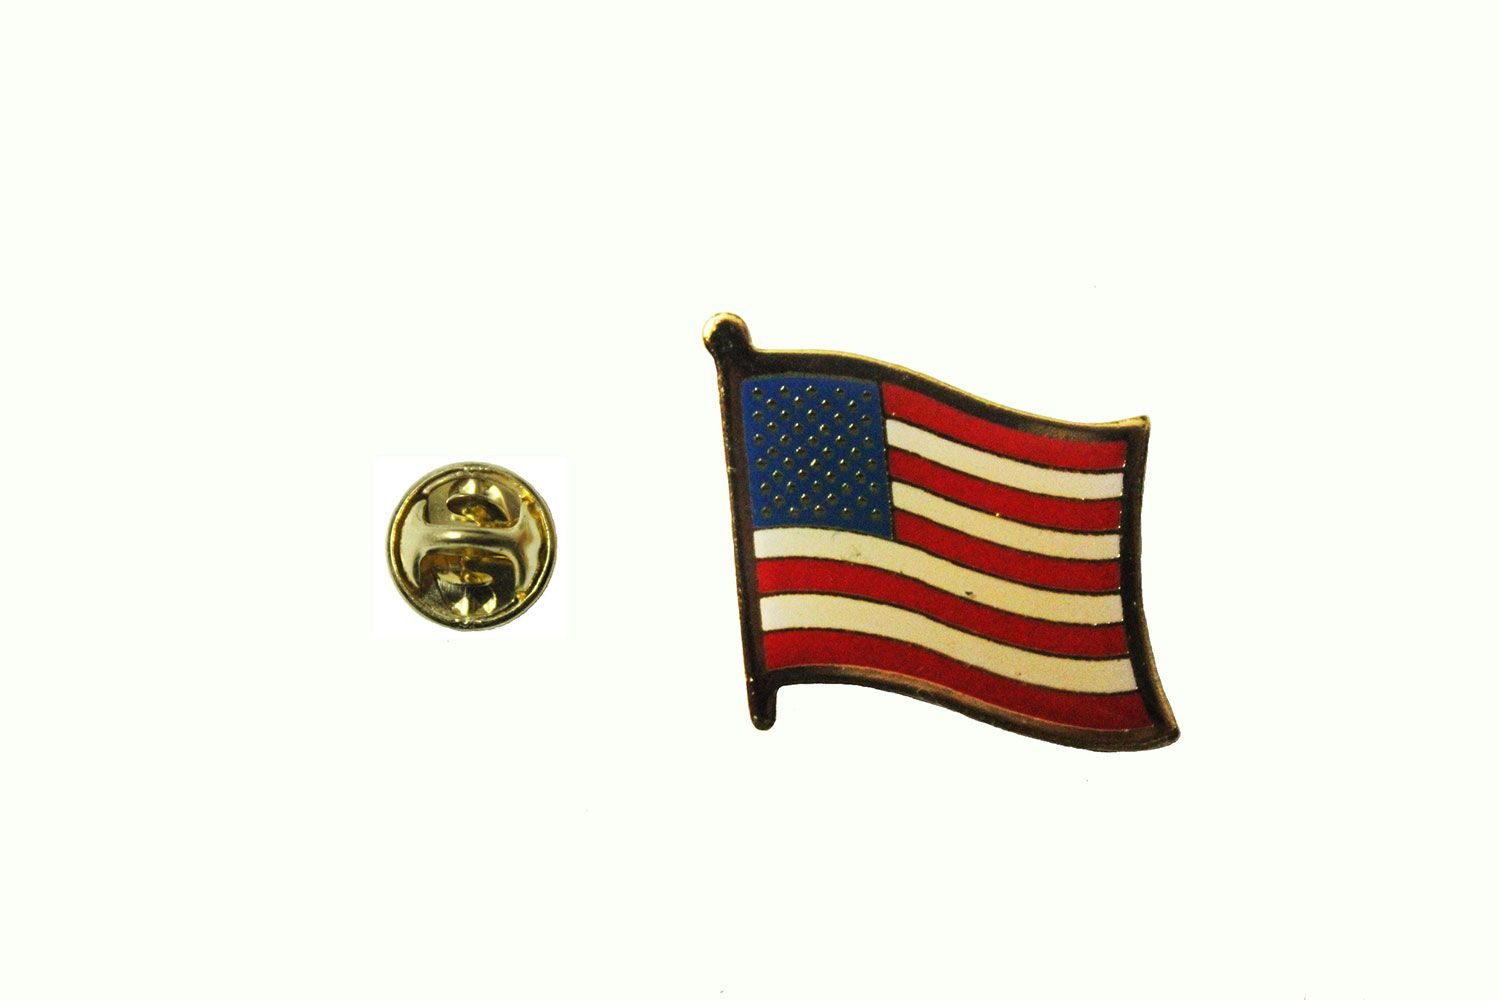 USA UNITED STATES STARS U0026 STRIPES COUNTRY FLAG SMALL METAL LAPEL PIN BADGE  NEW SIZE 1